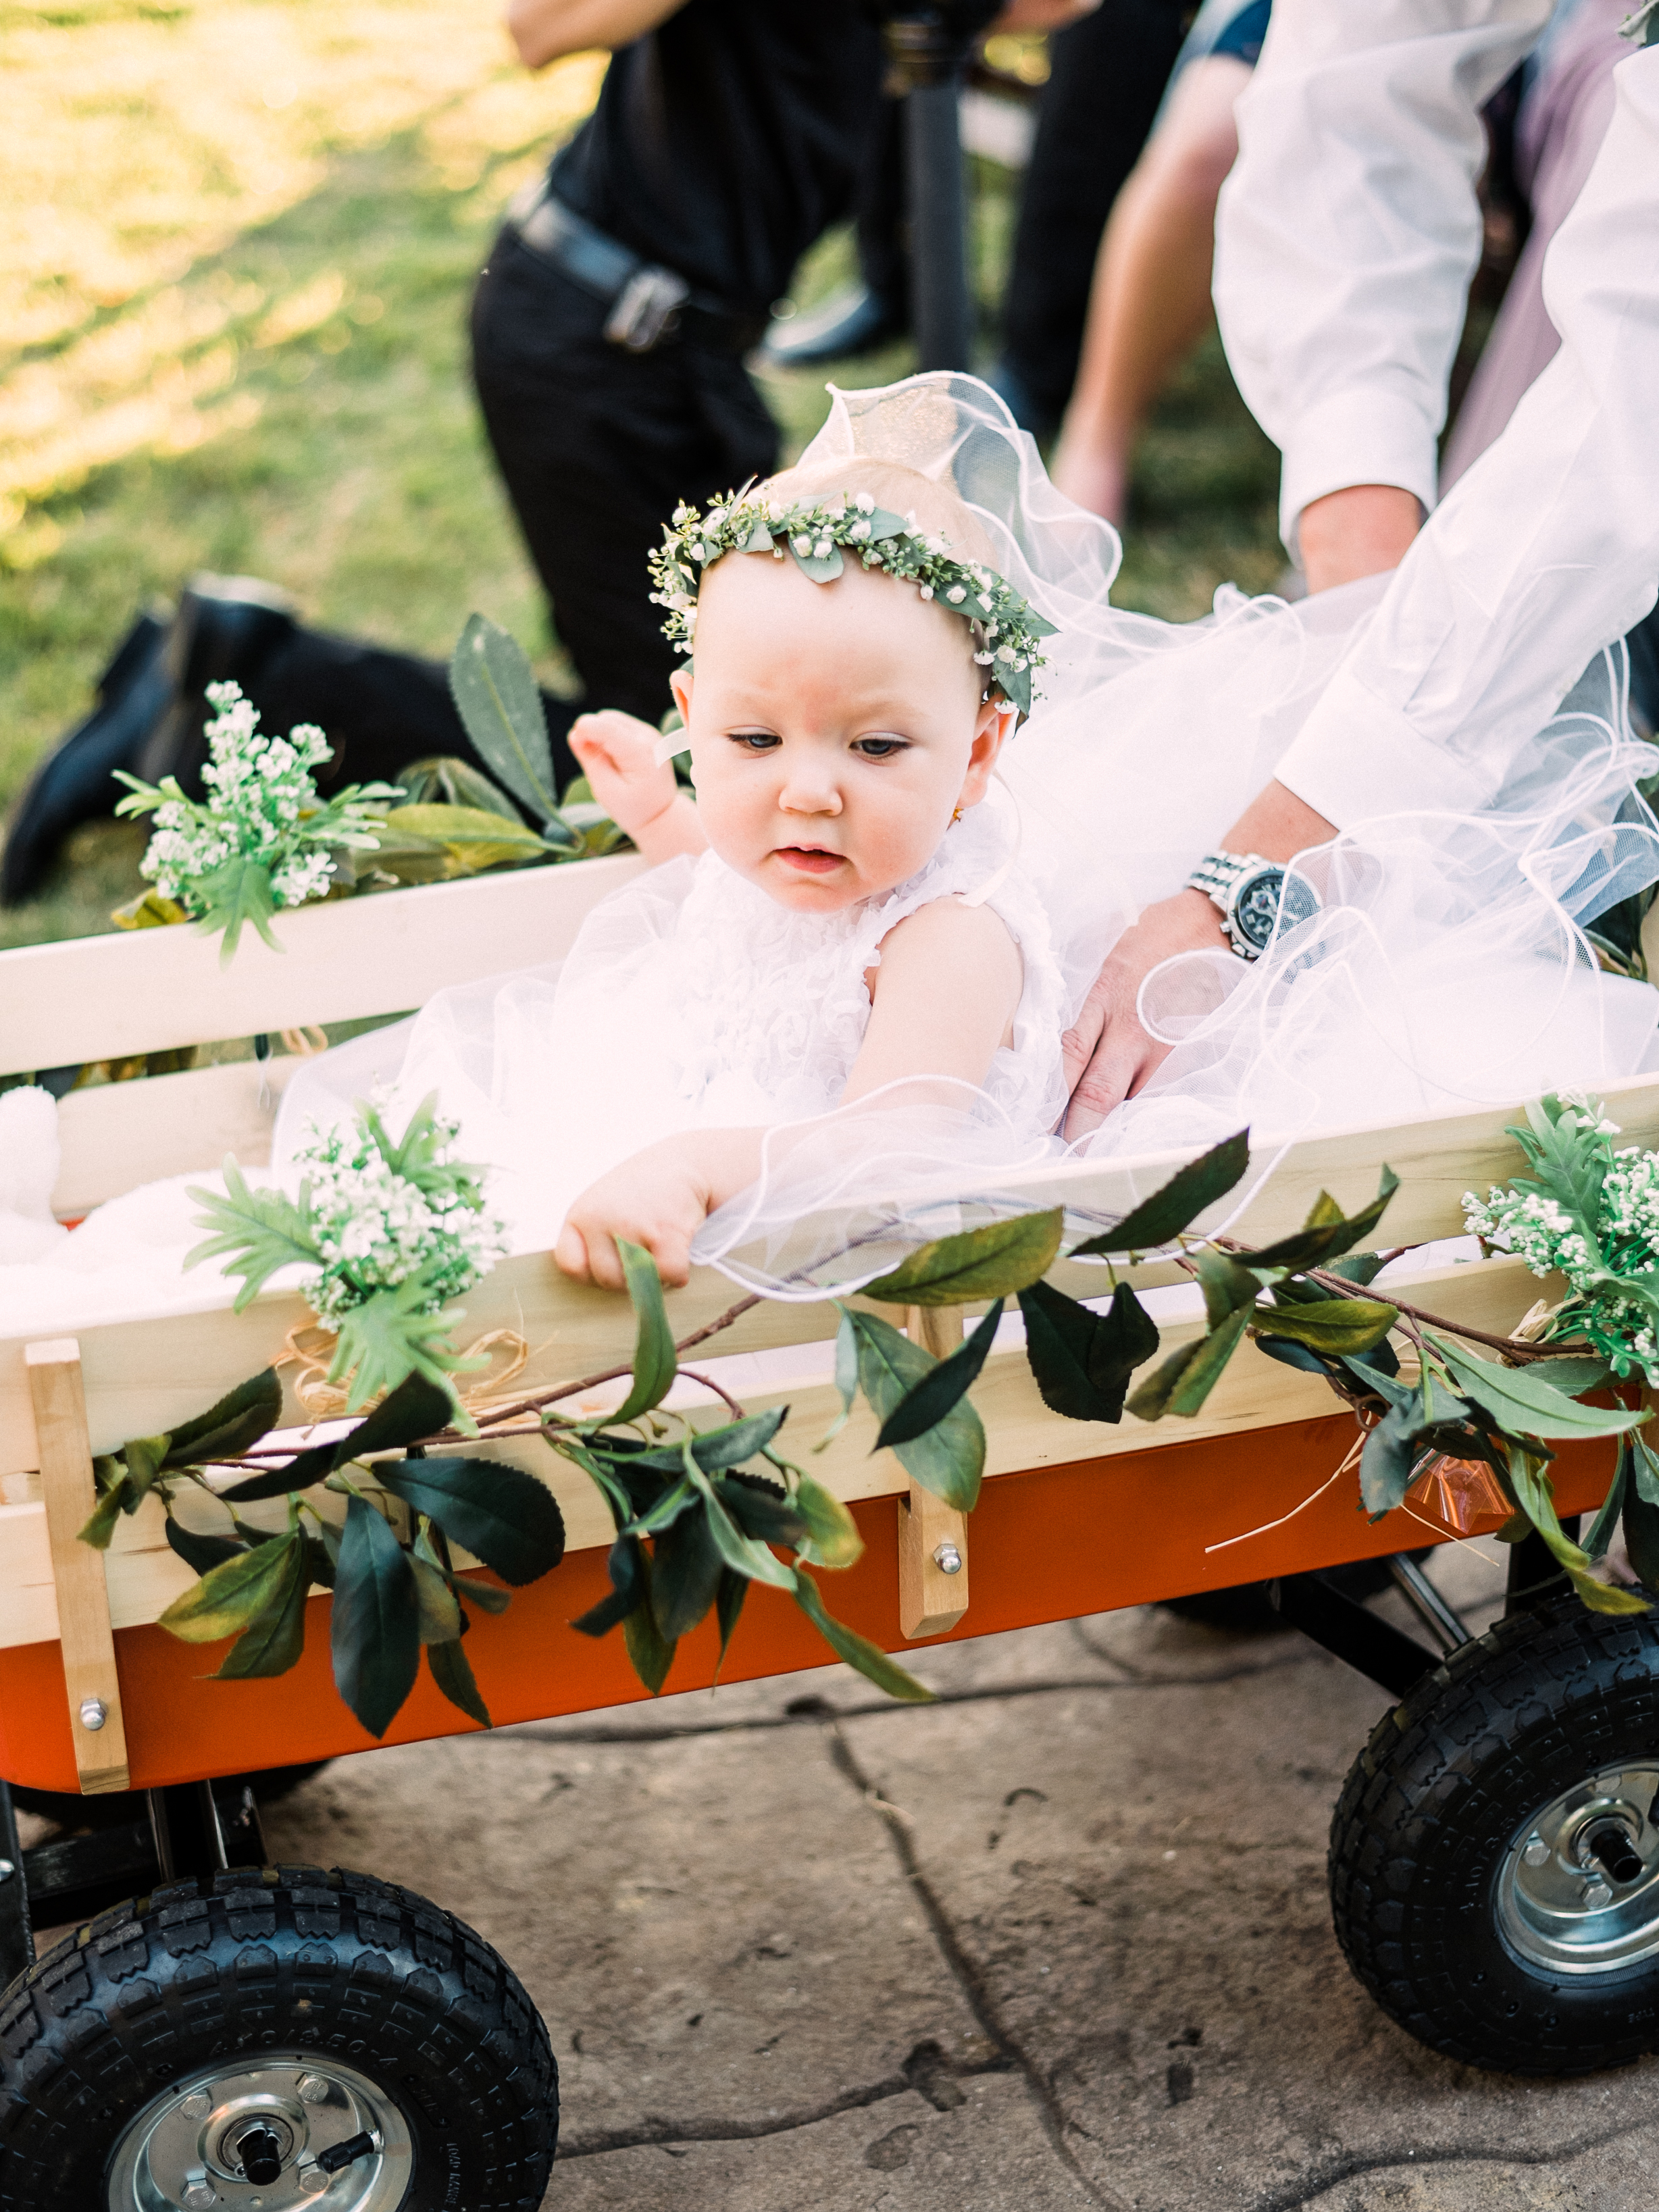 A baby flower girl rides in a red wagon down the aisle at a sunny wedding ceremony in Georgetown, Texas.